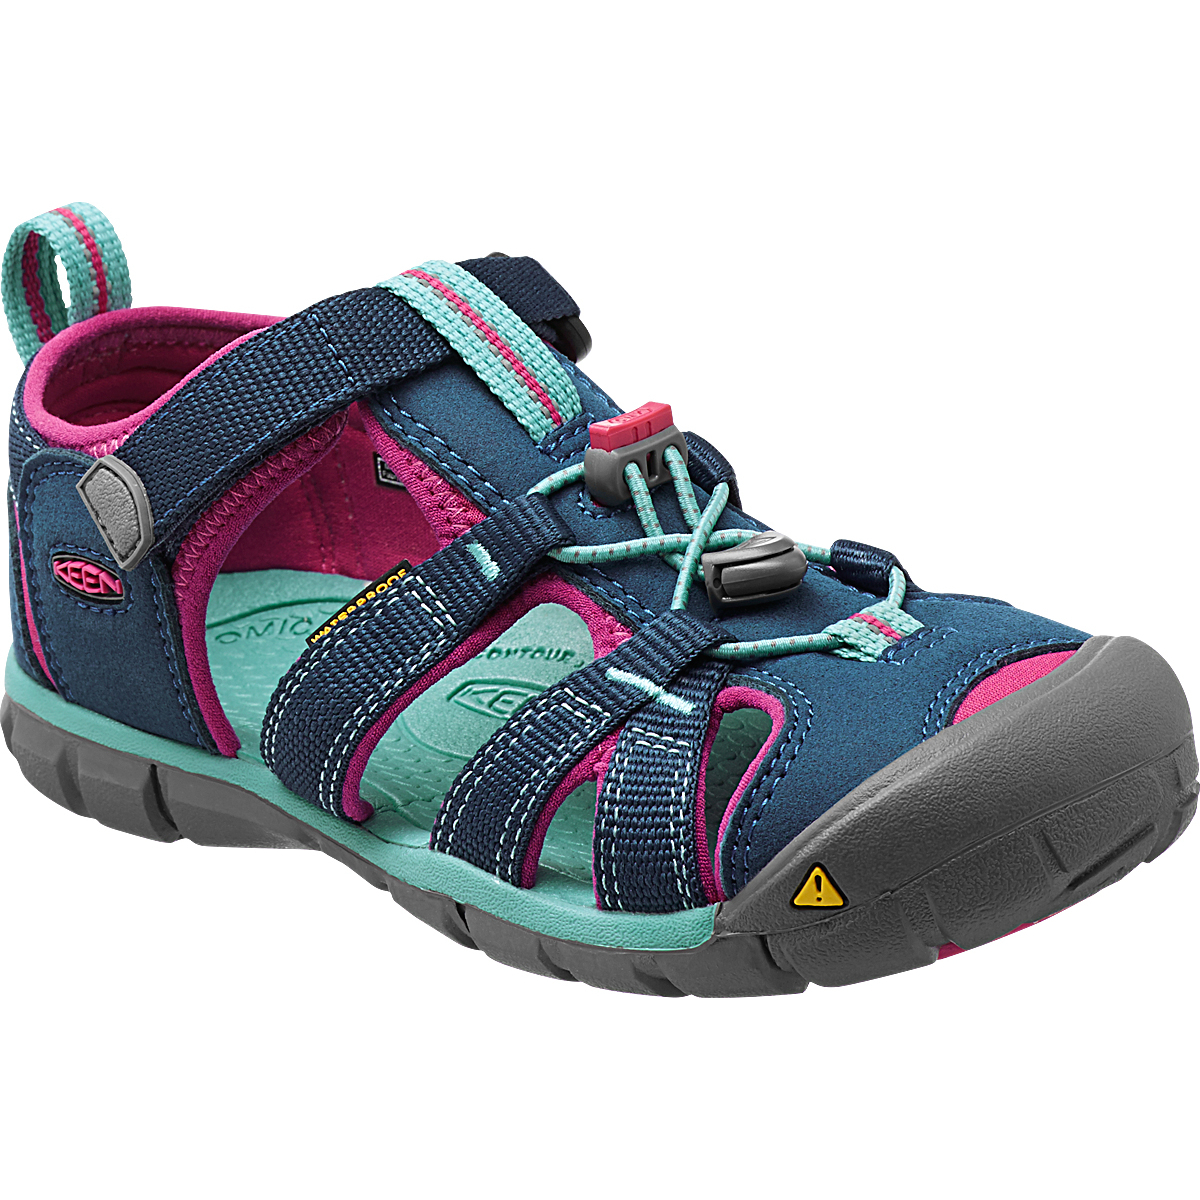 Keen Little Kids' Seacamp Ii Cnx Sandals - Blue, 13